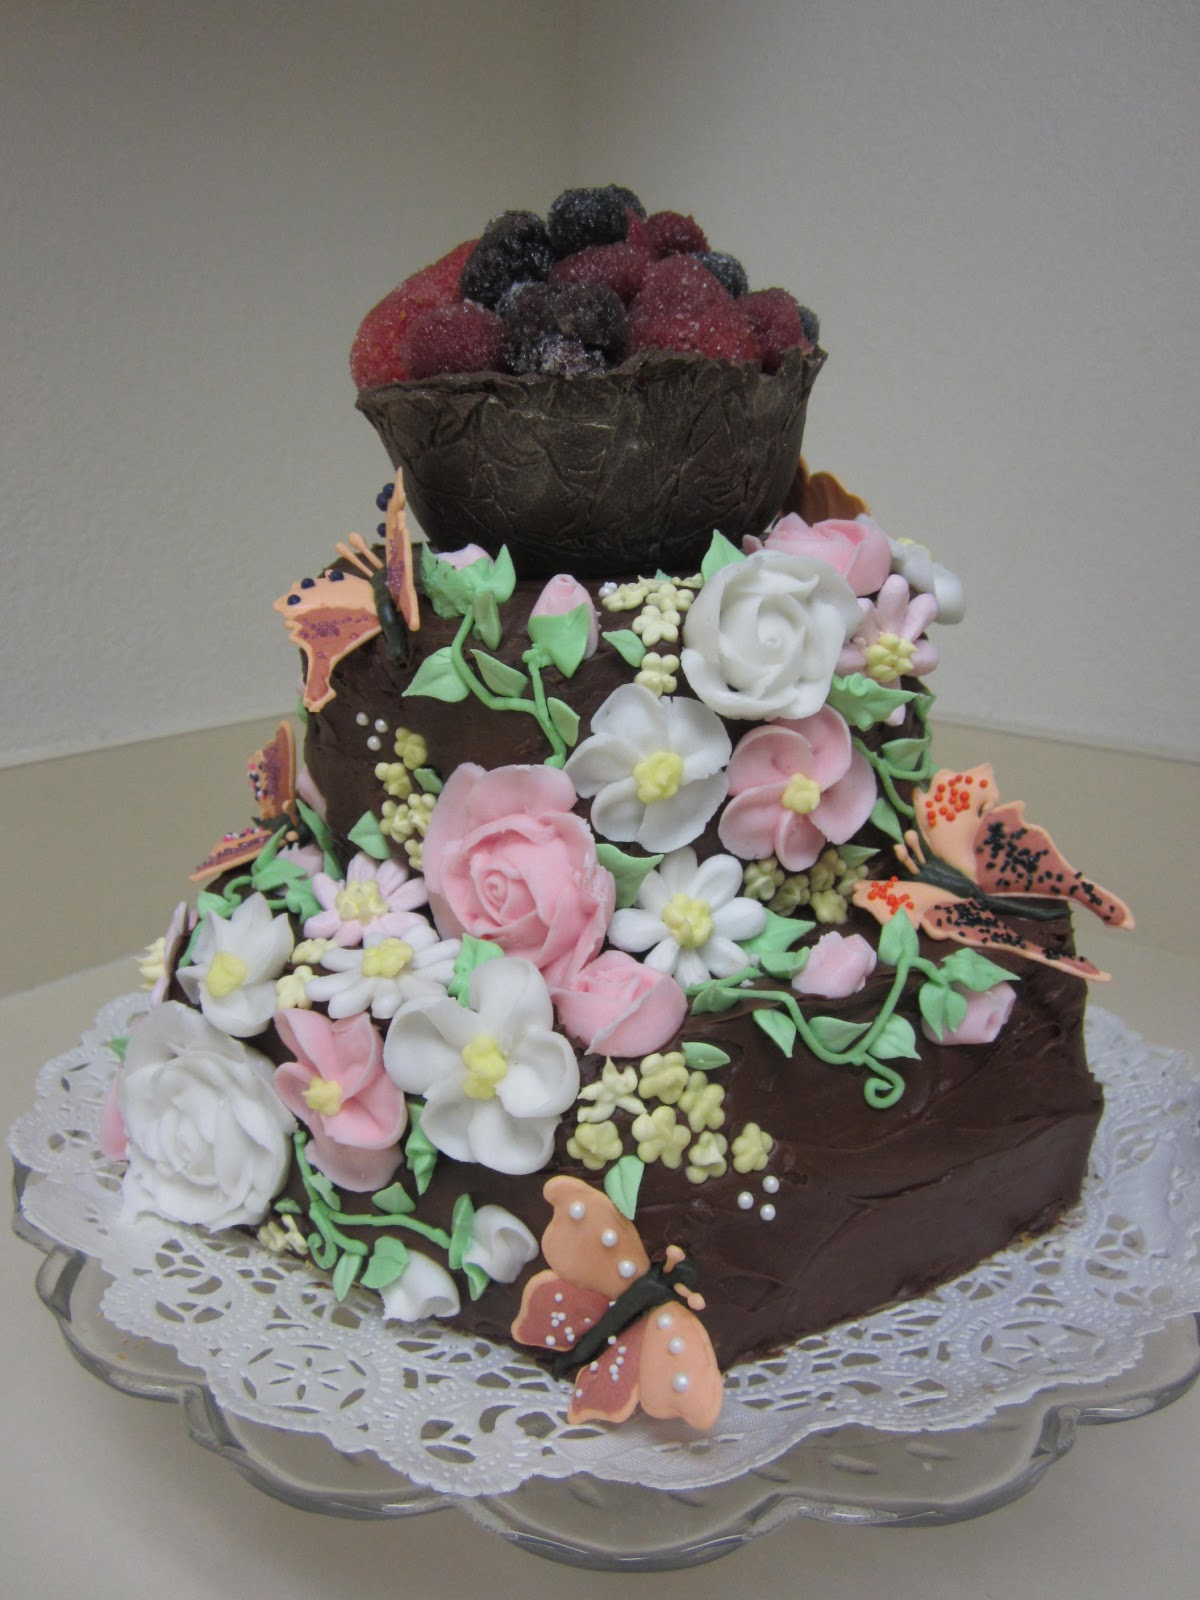 Created by Kelli: New Cake Decorating Techniques